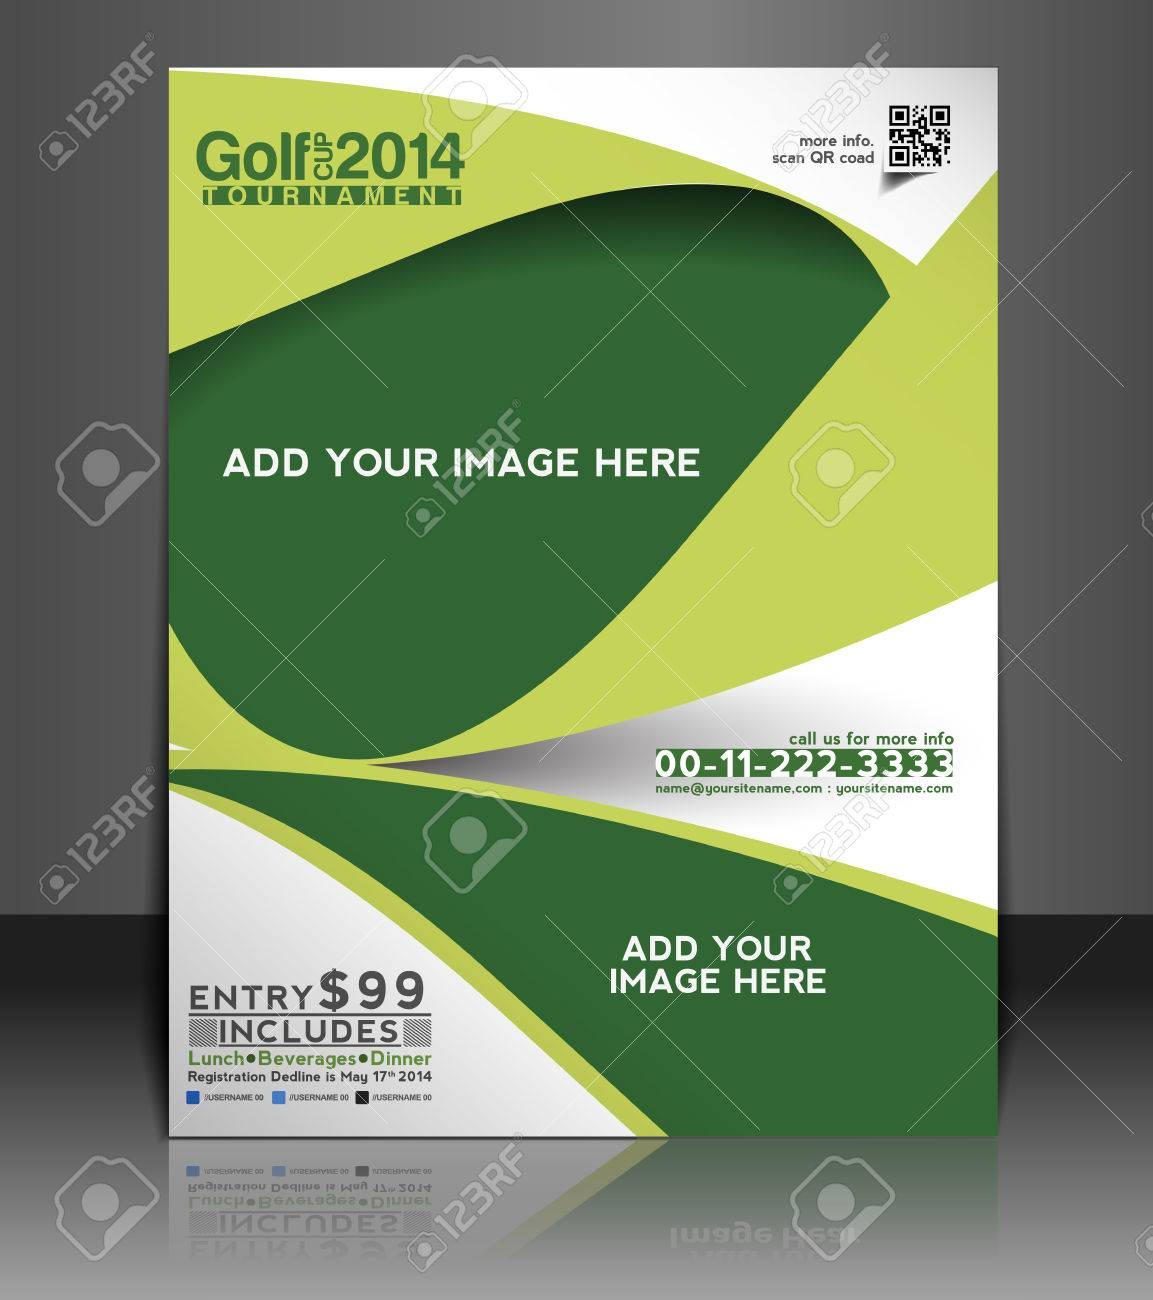 free golf outing flyer template aildoc productoseb co